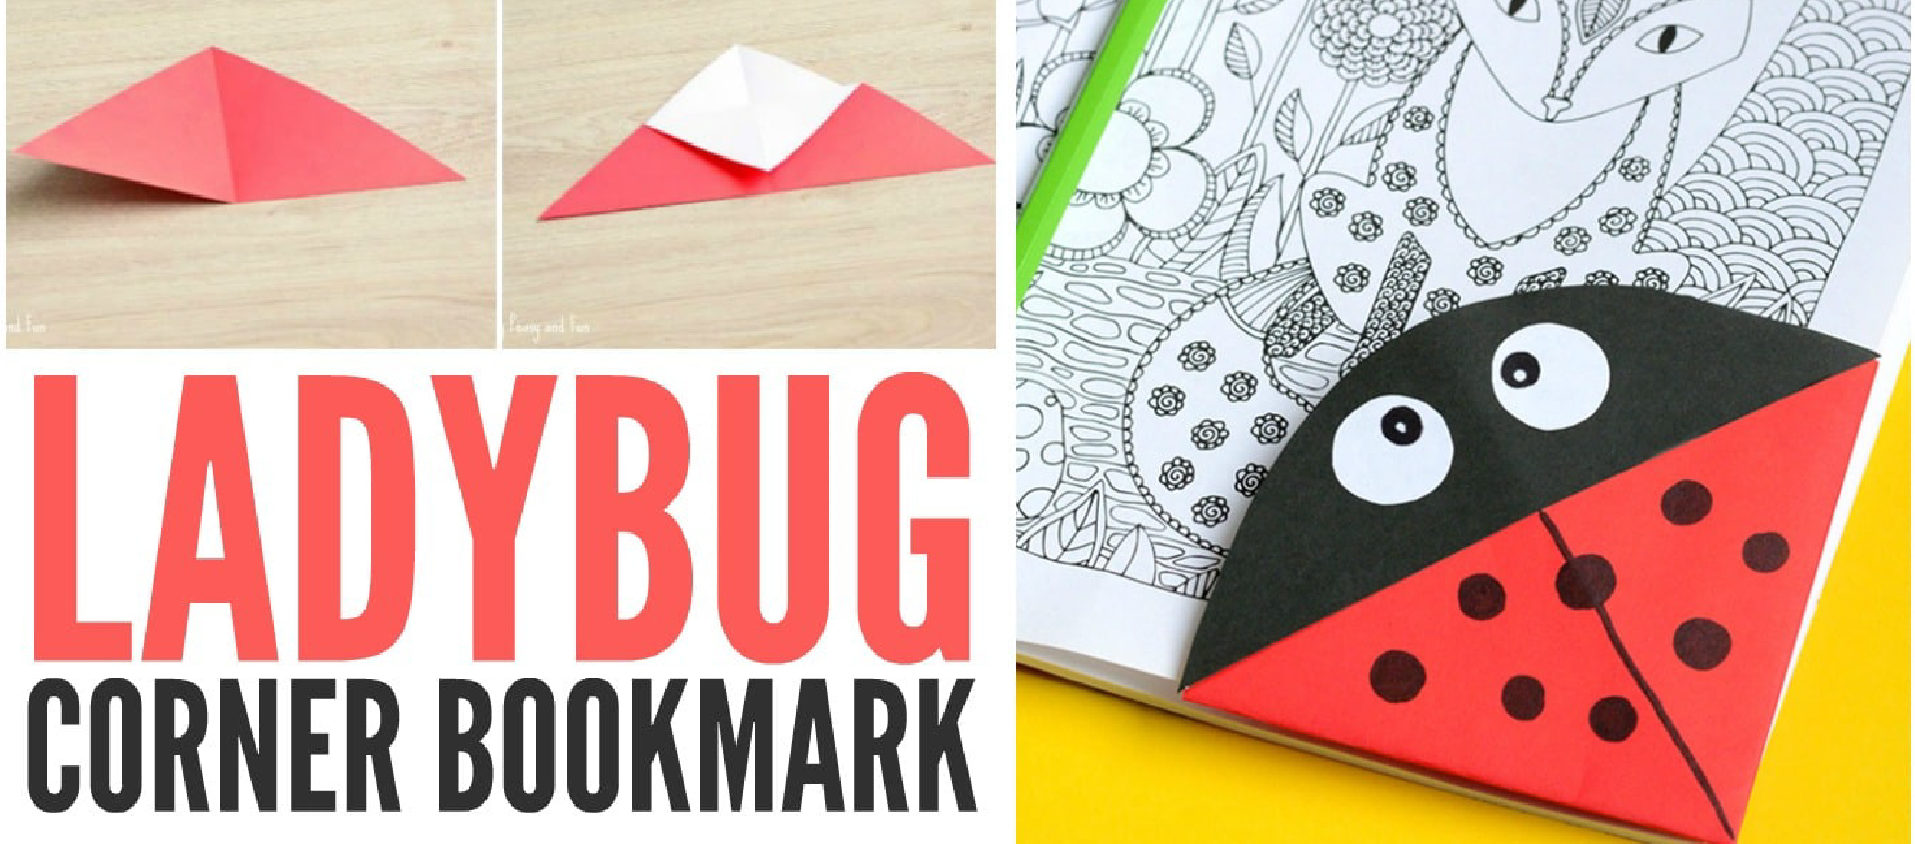 ladybug corner bookmark ladybug corner bookmark downloadable activity books2you 2301